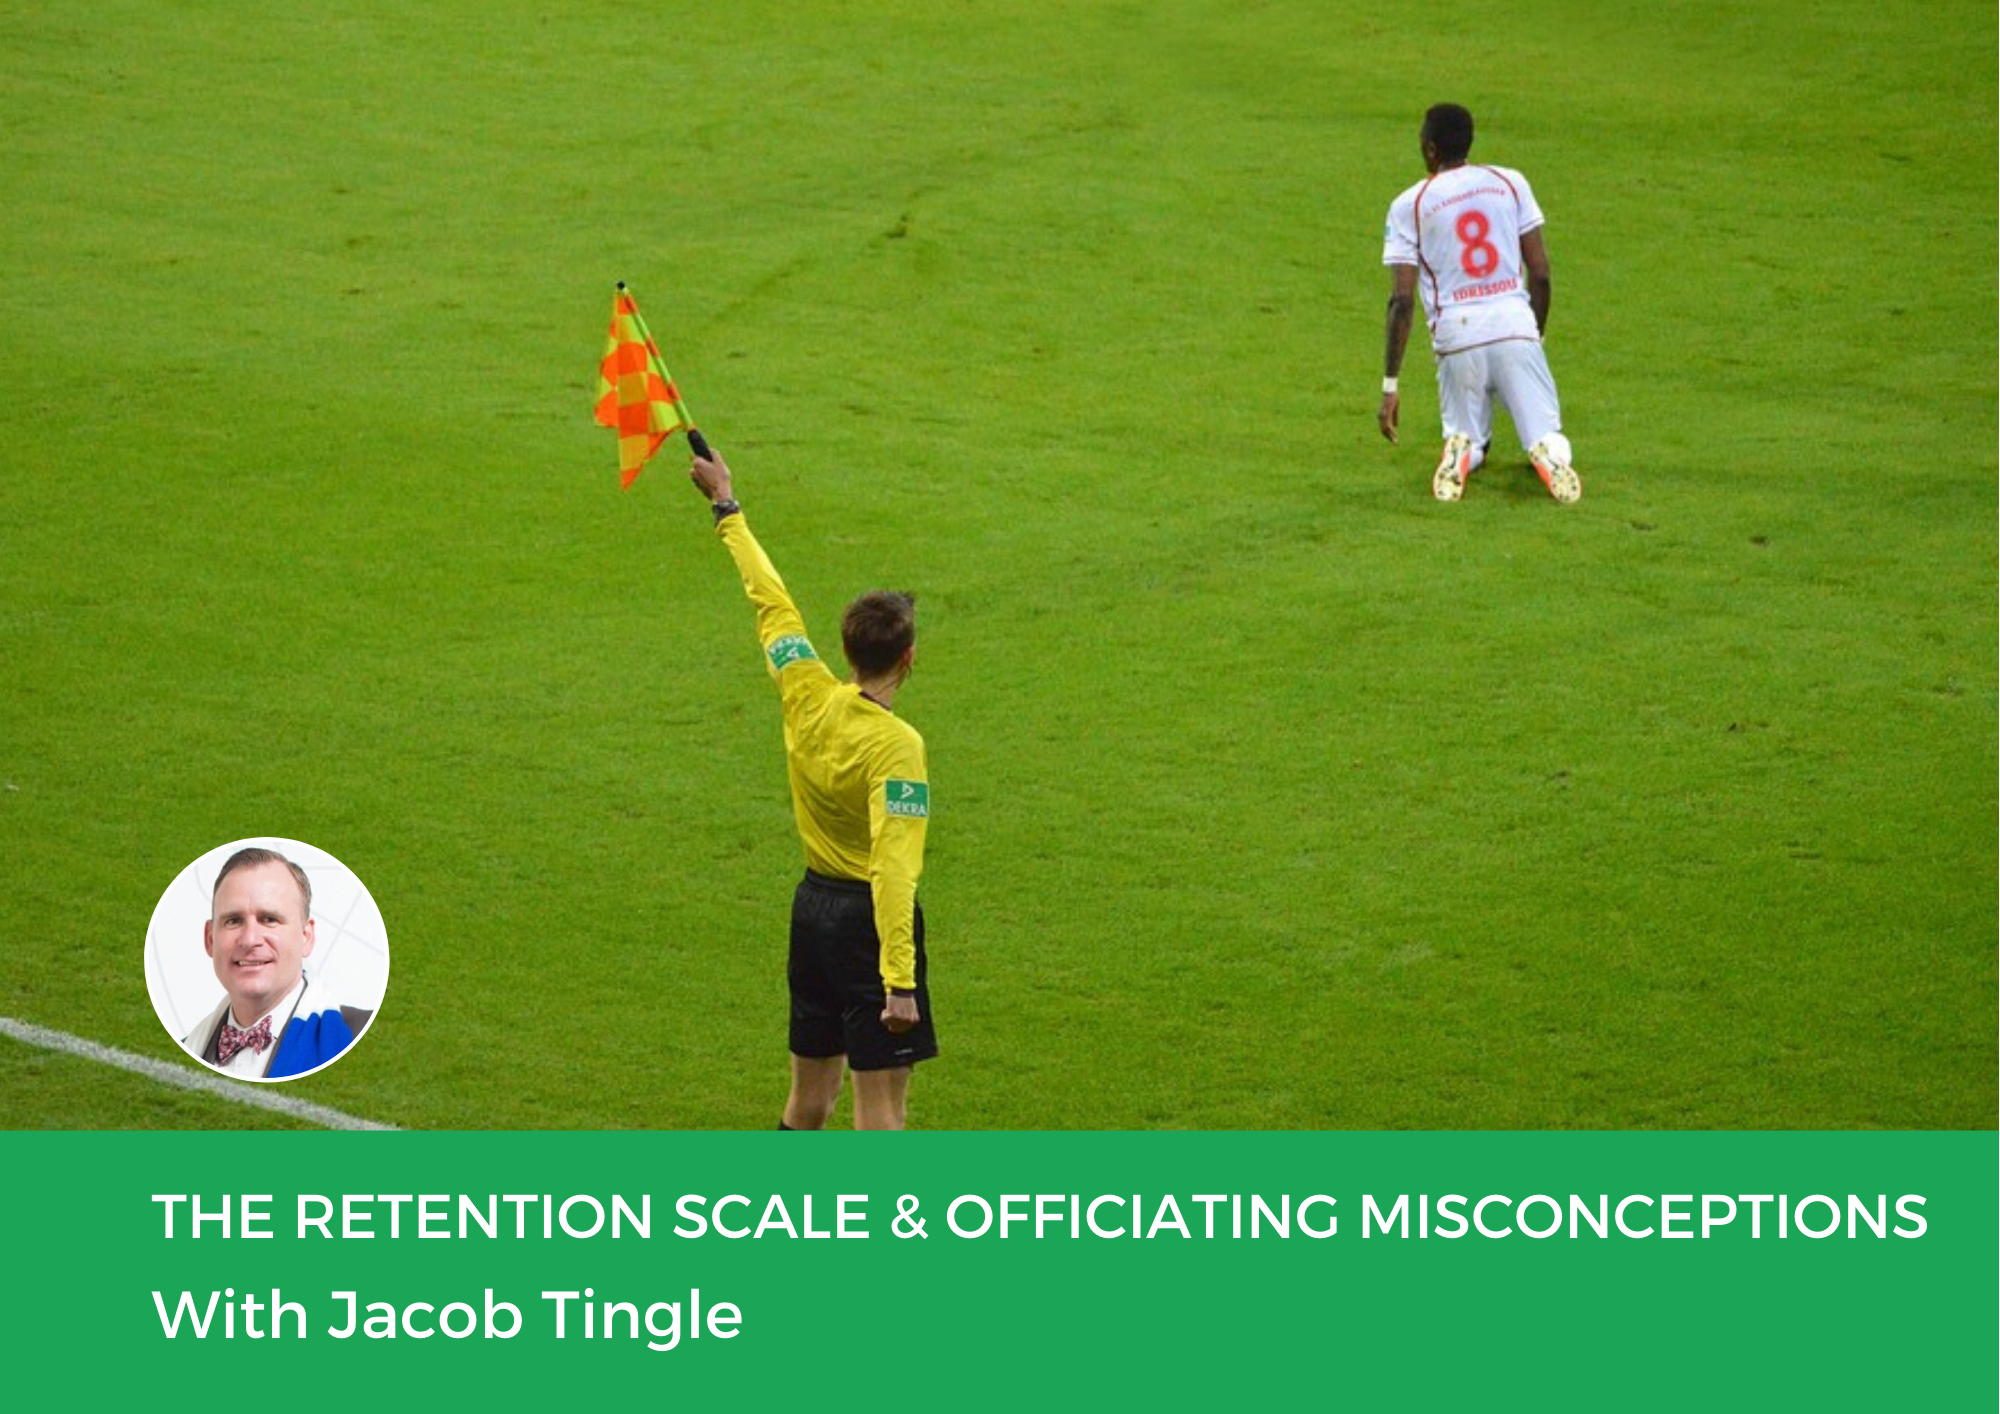 The Retention Scale & Officiating Misconceptions